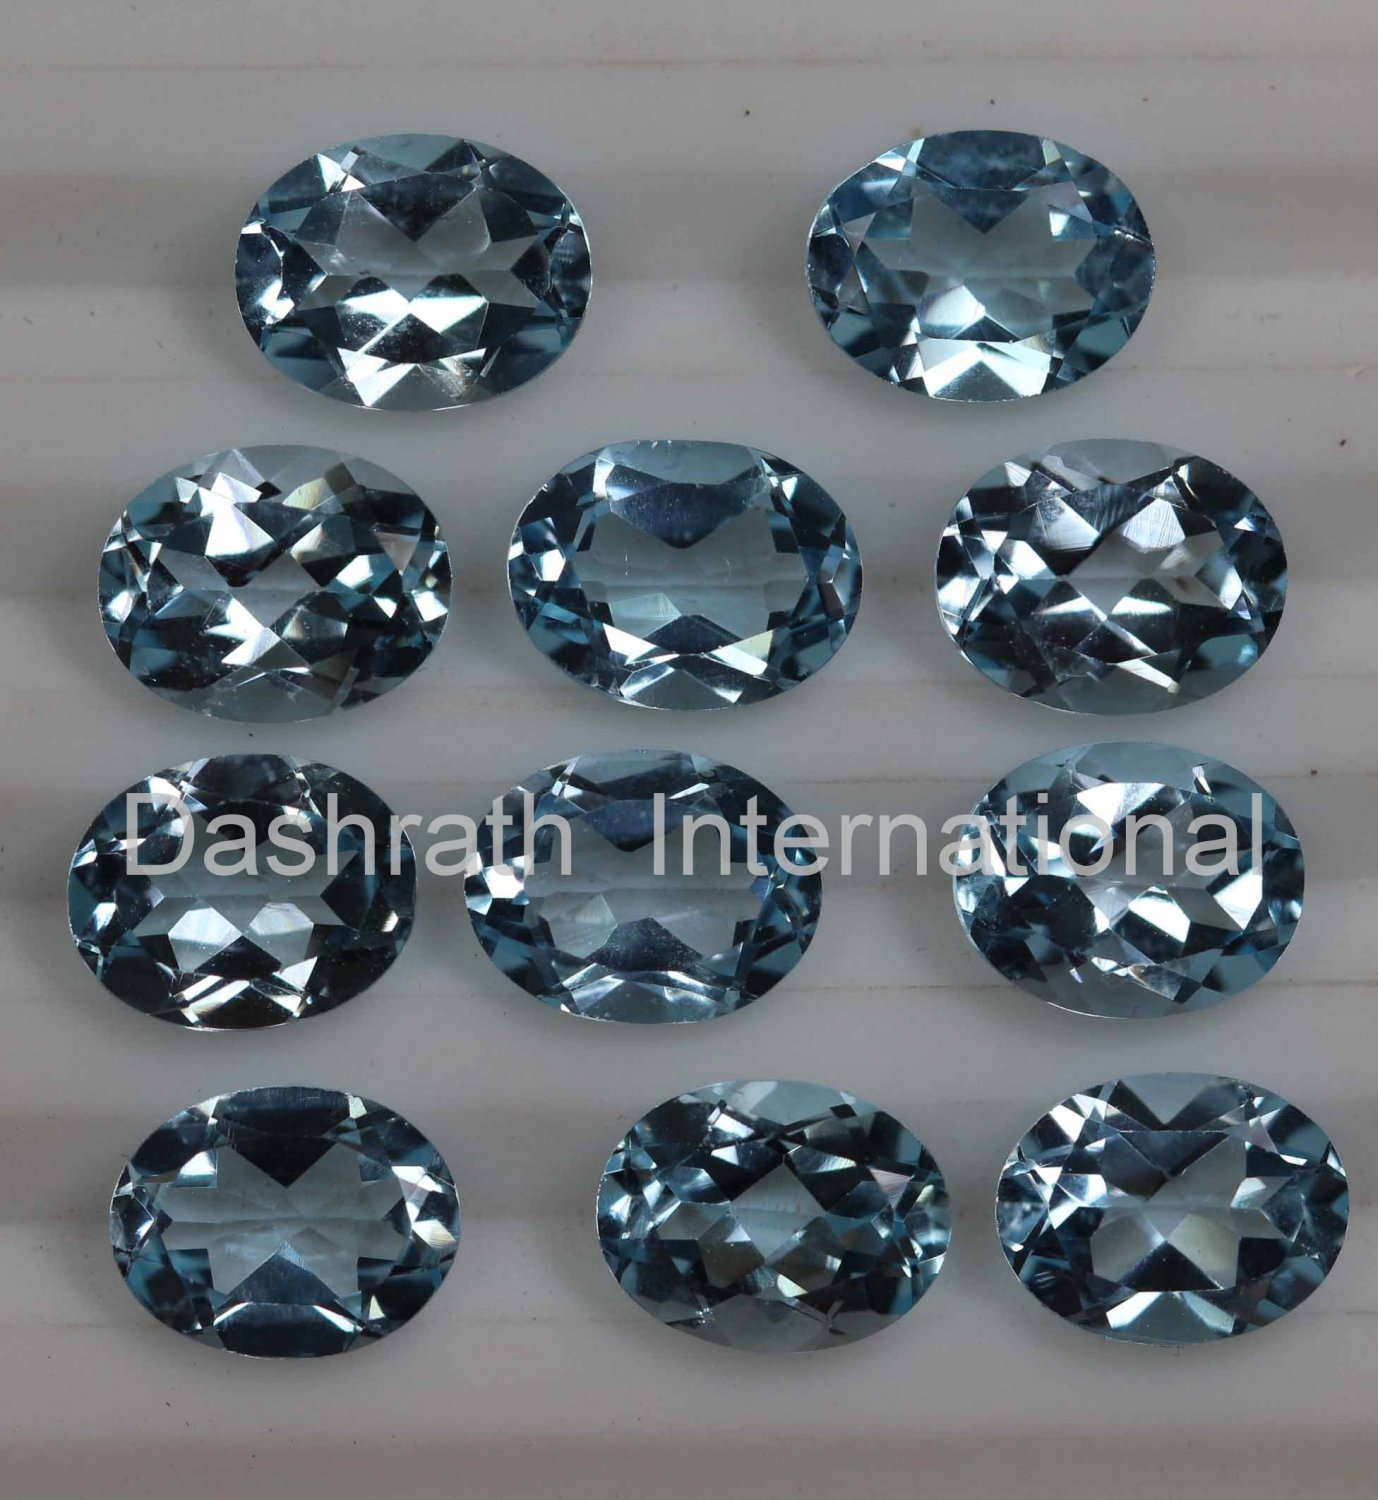 5x3mm Natural Sky Blue Topaz Faceted Cut Oval  25 Pieces Lot  Top Quality Loose Gemstone